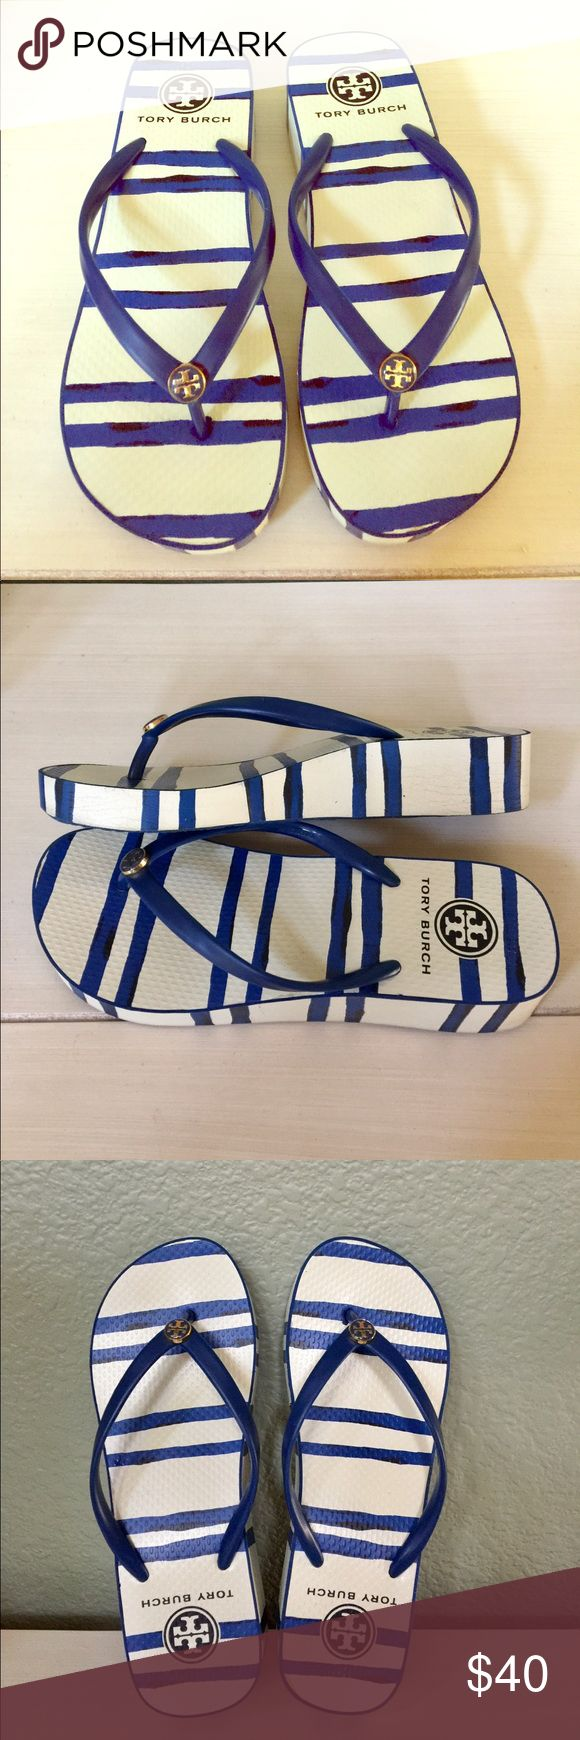 Tory Burch wedge flip flop Tory Burch striped blue and white wedge flip flop, used only a few times. Ready to sell it since I haven't used it for a while, prefer to wear flat flip flops. Tory Burch Shoes Slippers